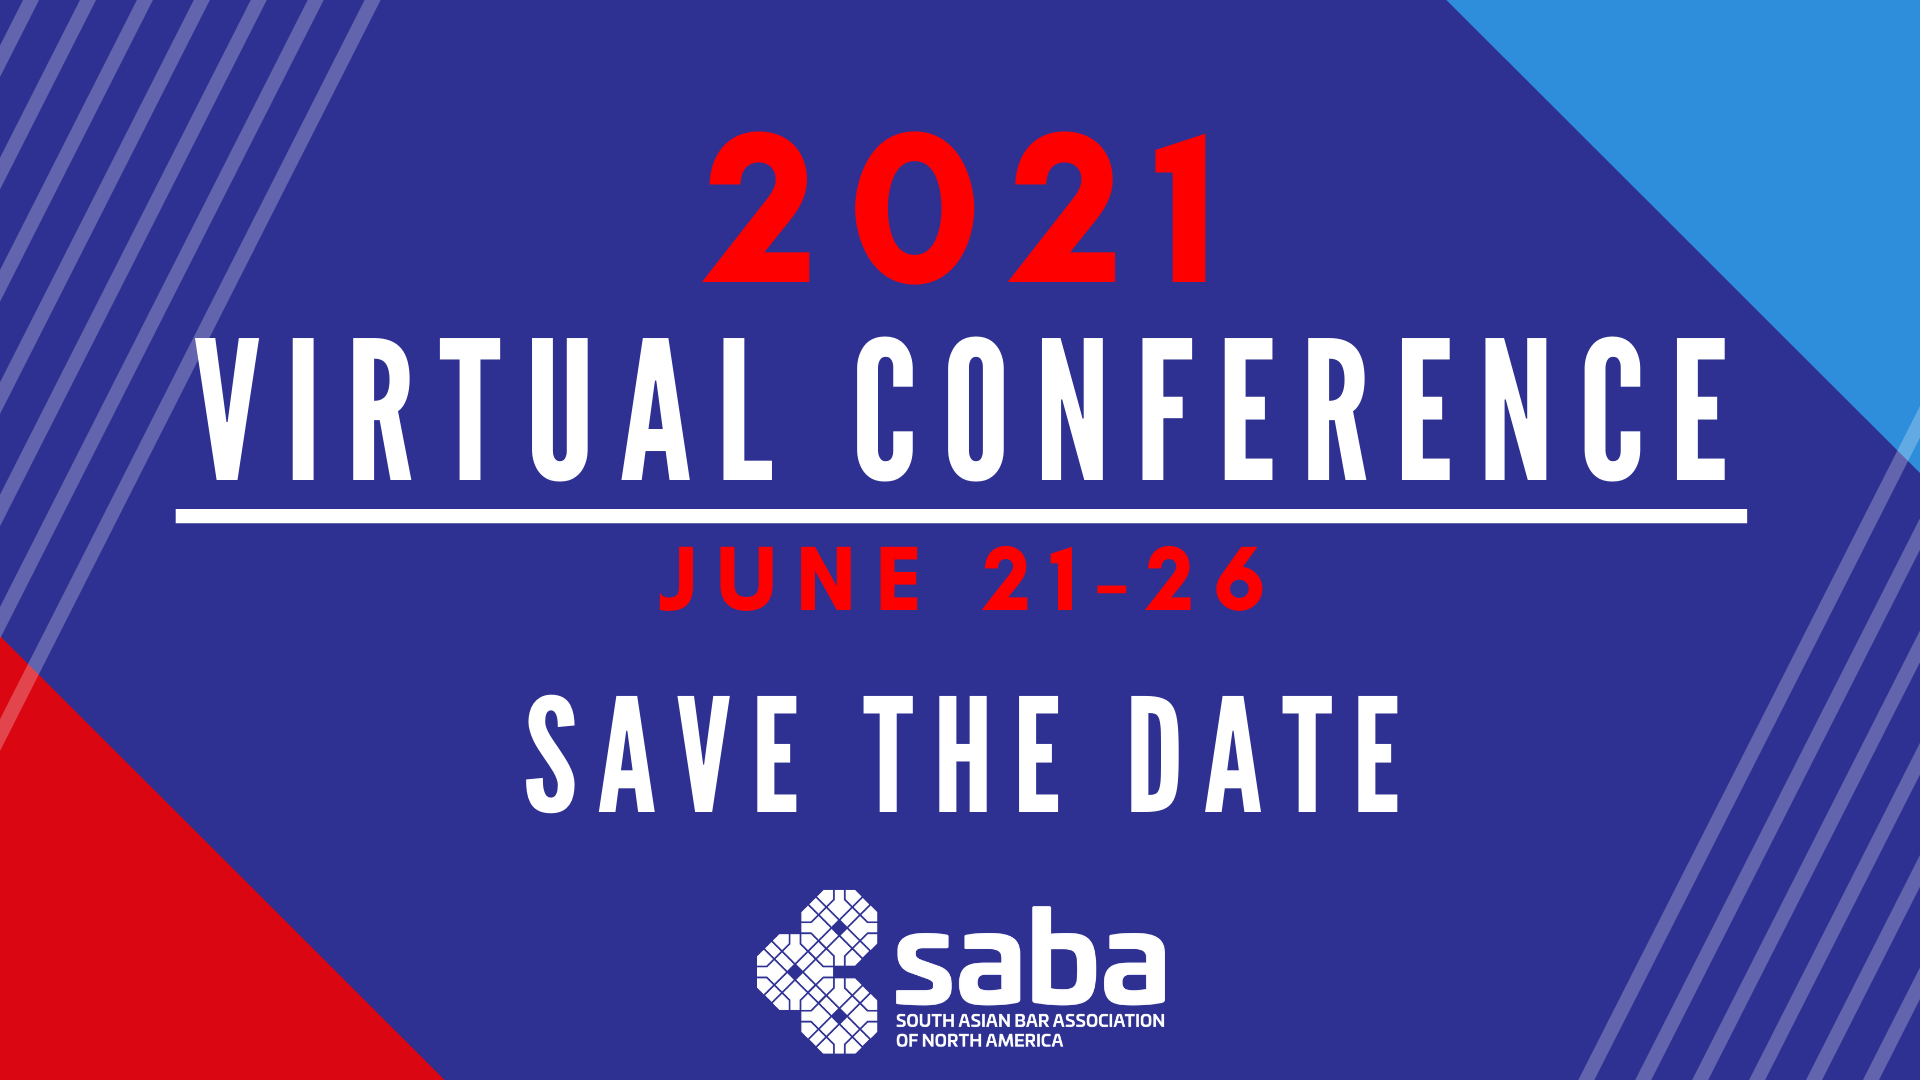 2021 Conference Save the Date (1)